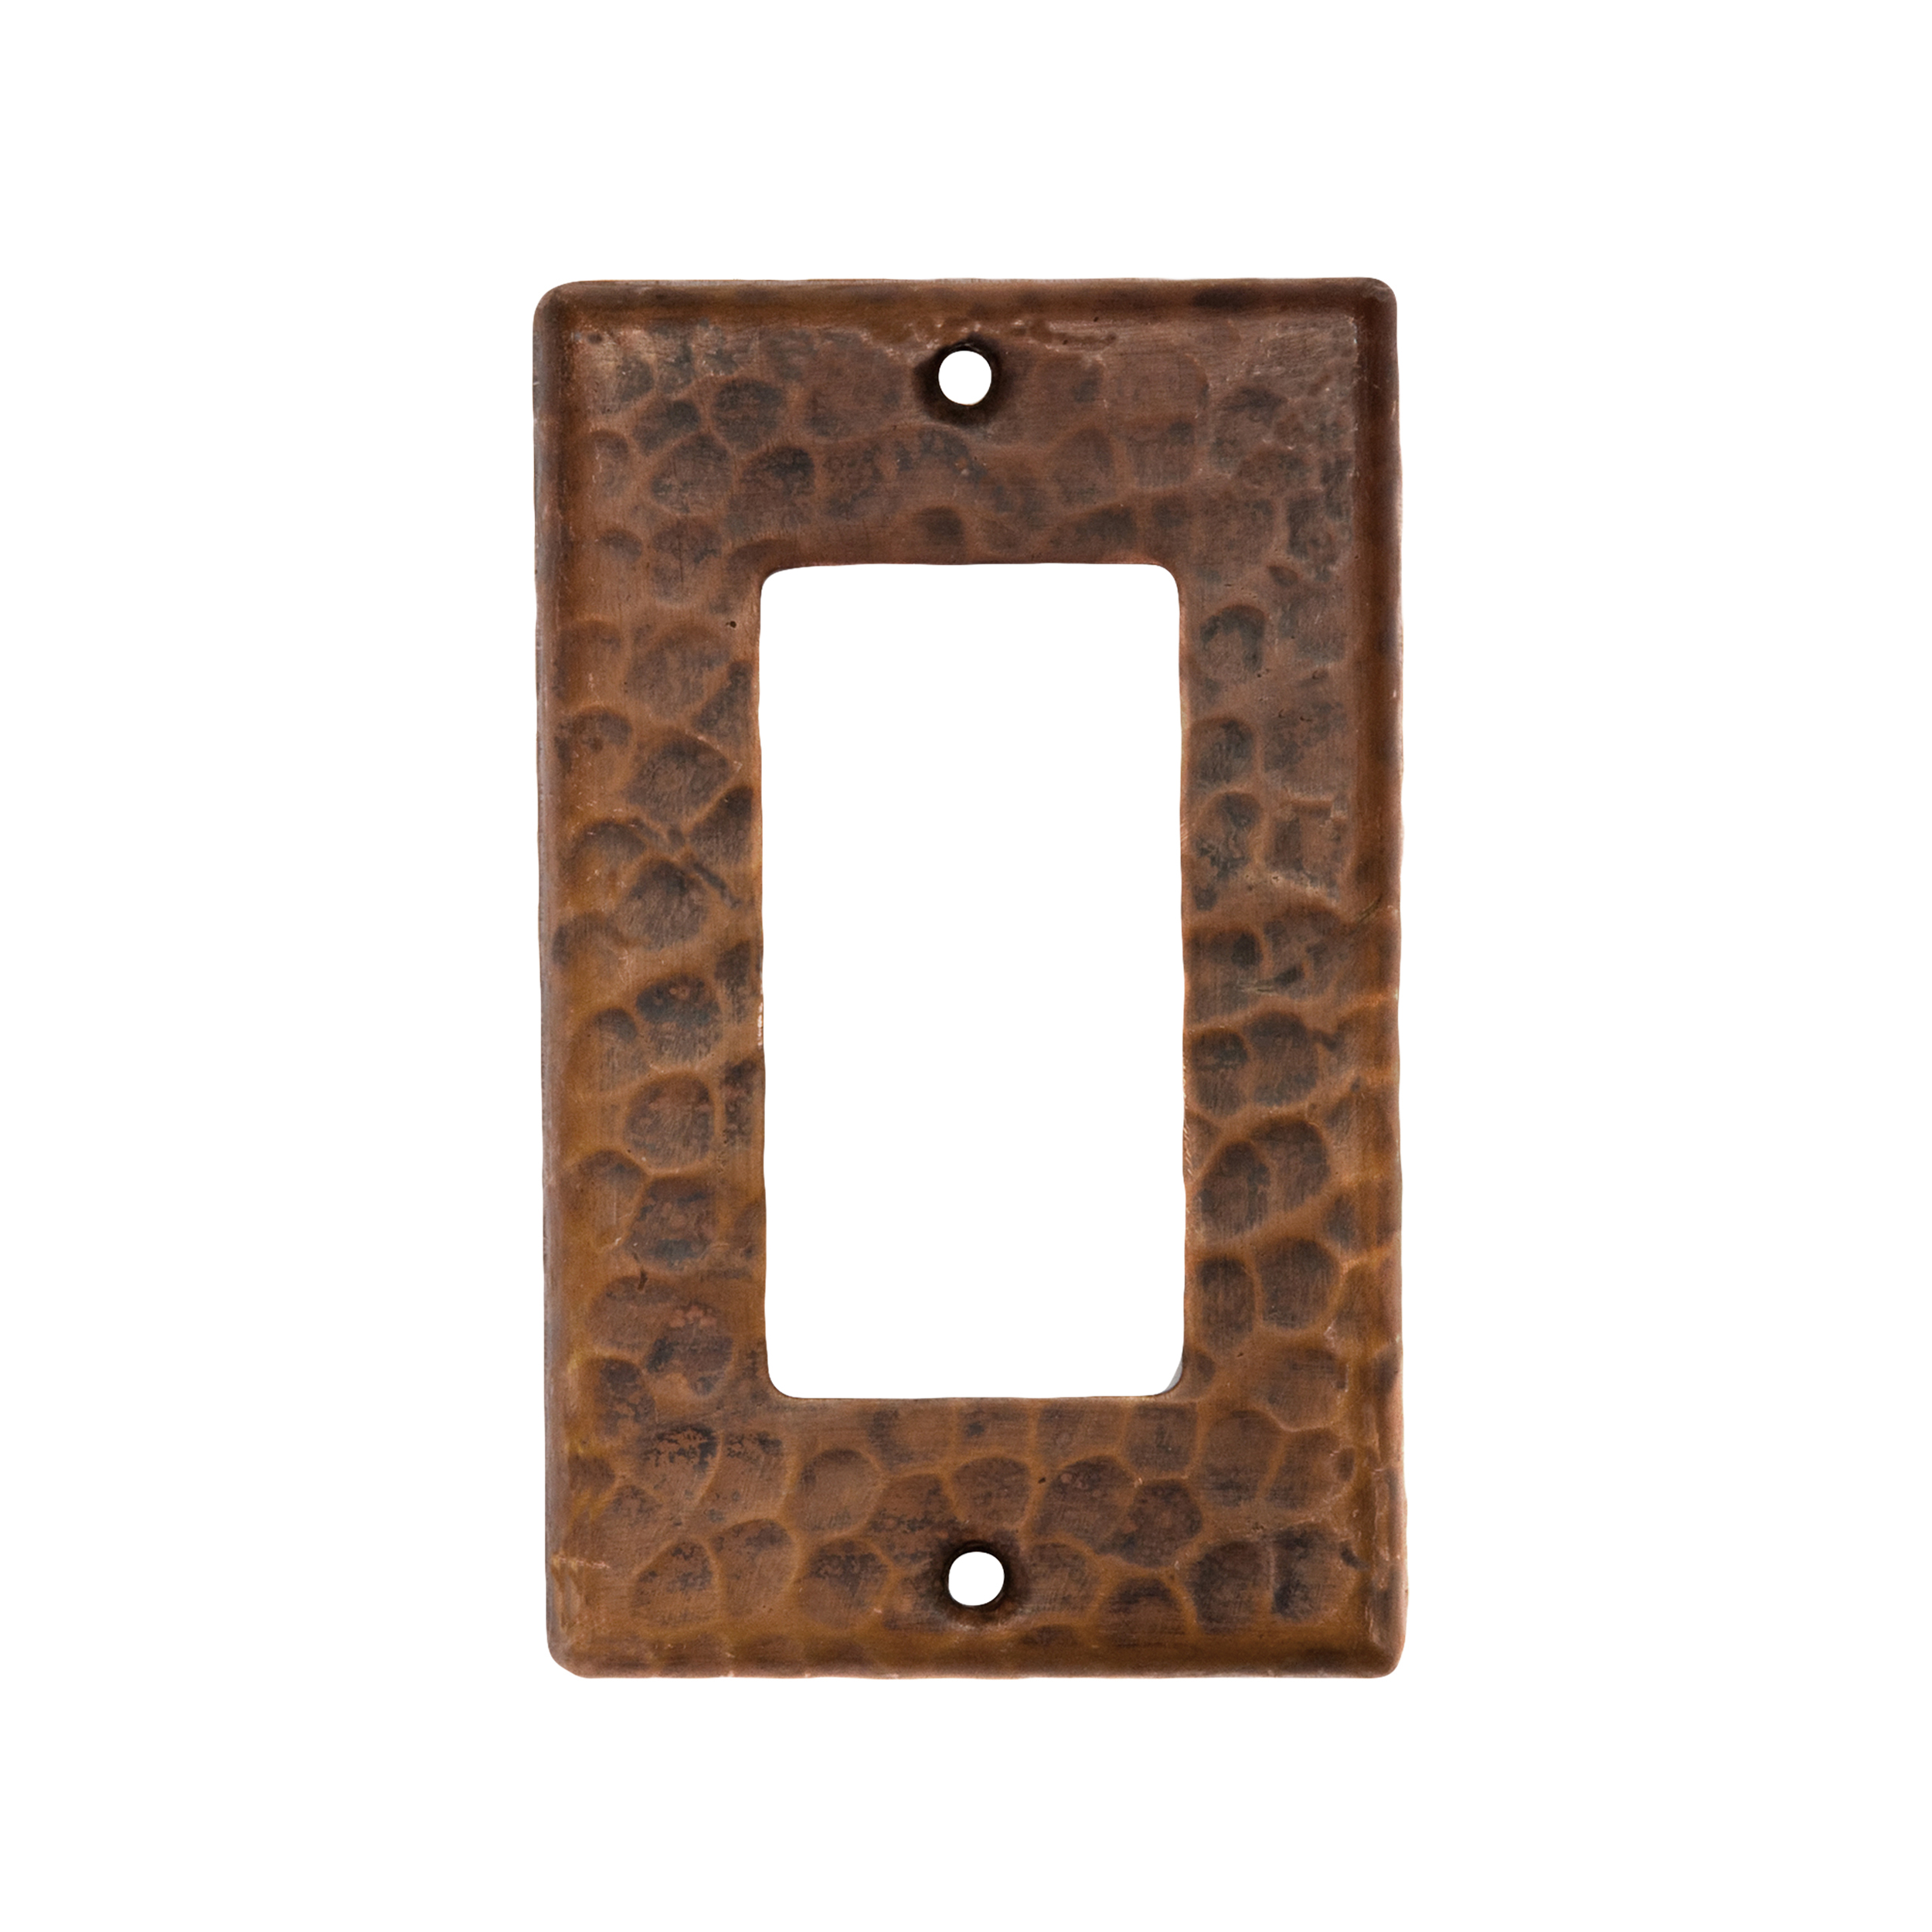 Single Ground Fault / Rocker GFI Switchplate Cover